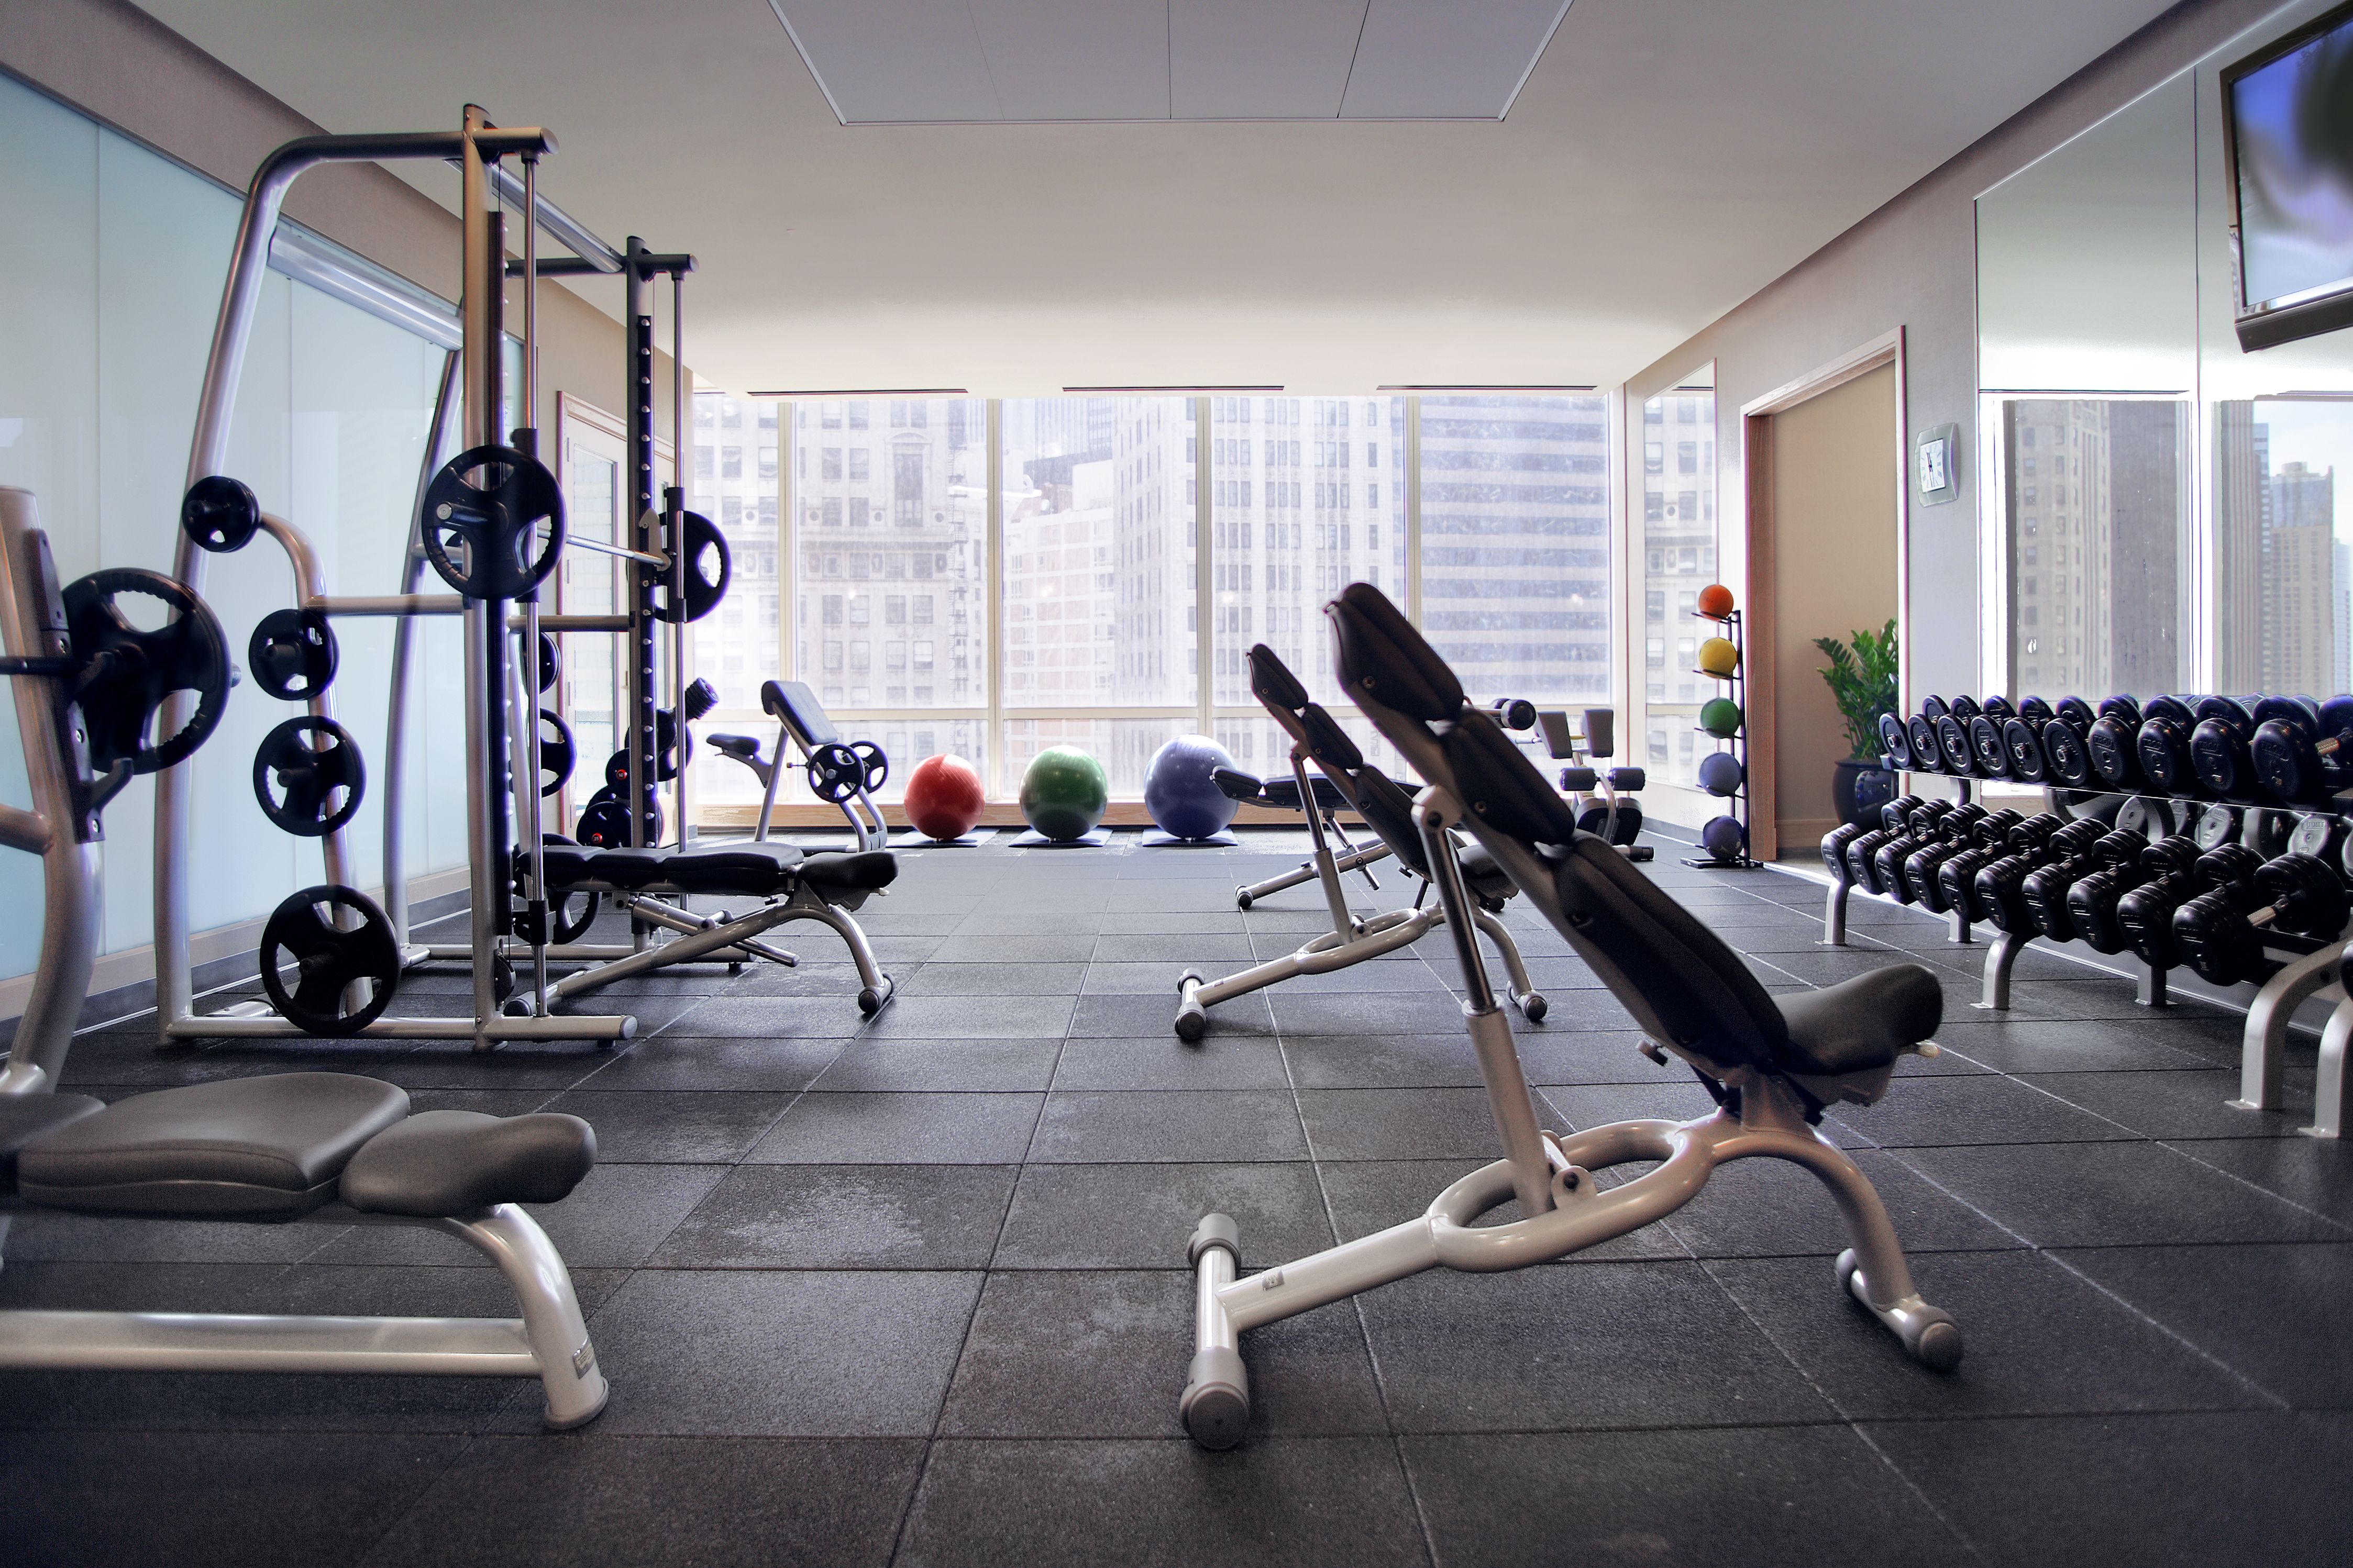 Hotel Fitness Center with Weights